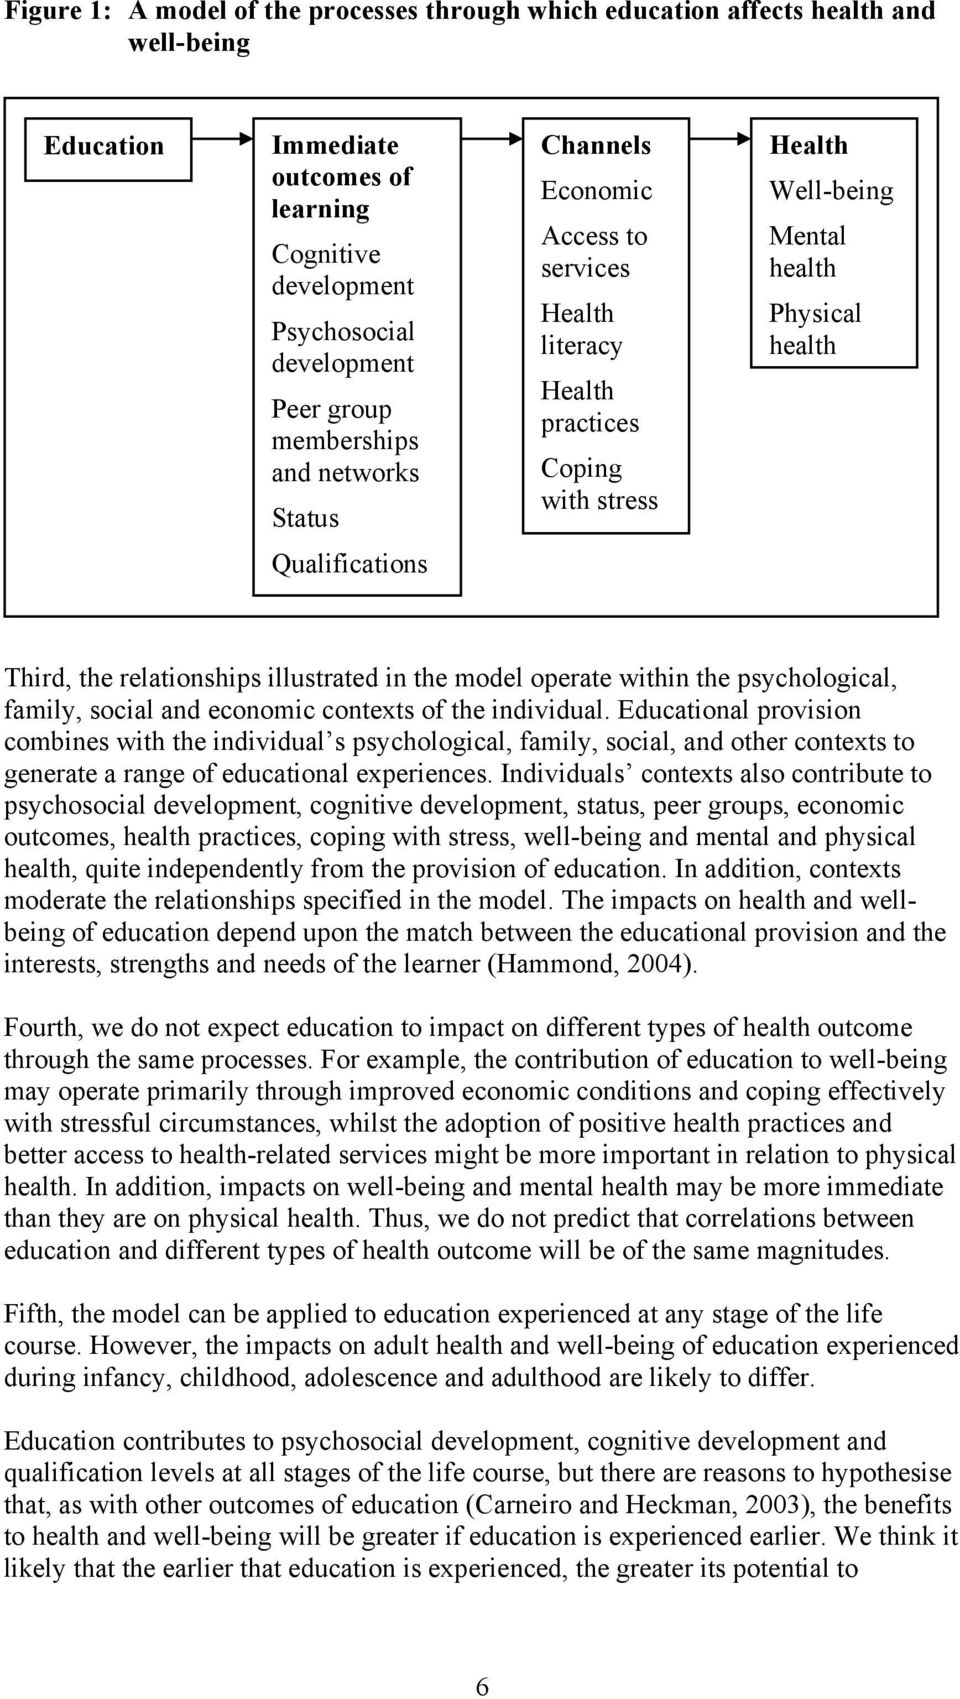 illustrated in the model operate within the psychological, family, social and economic contexts of the individual.